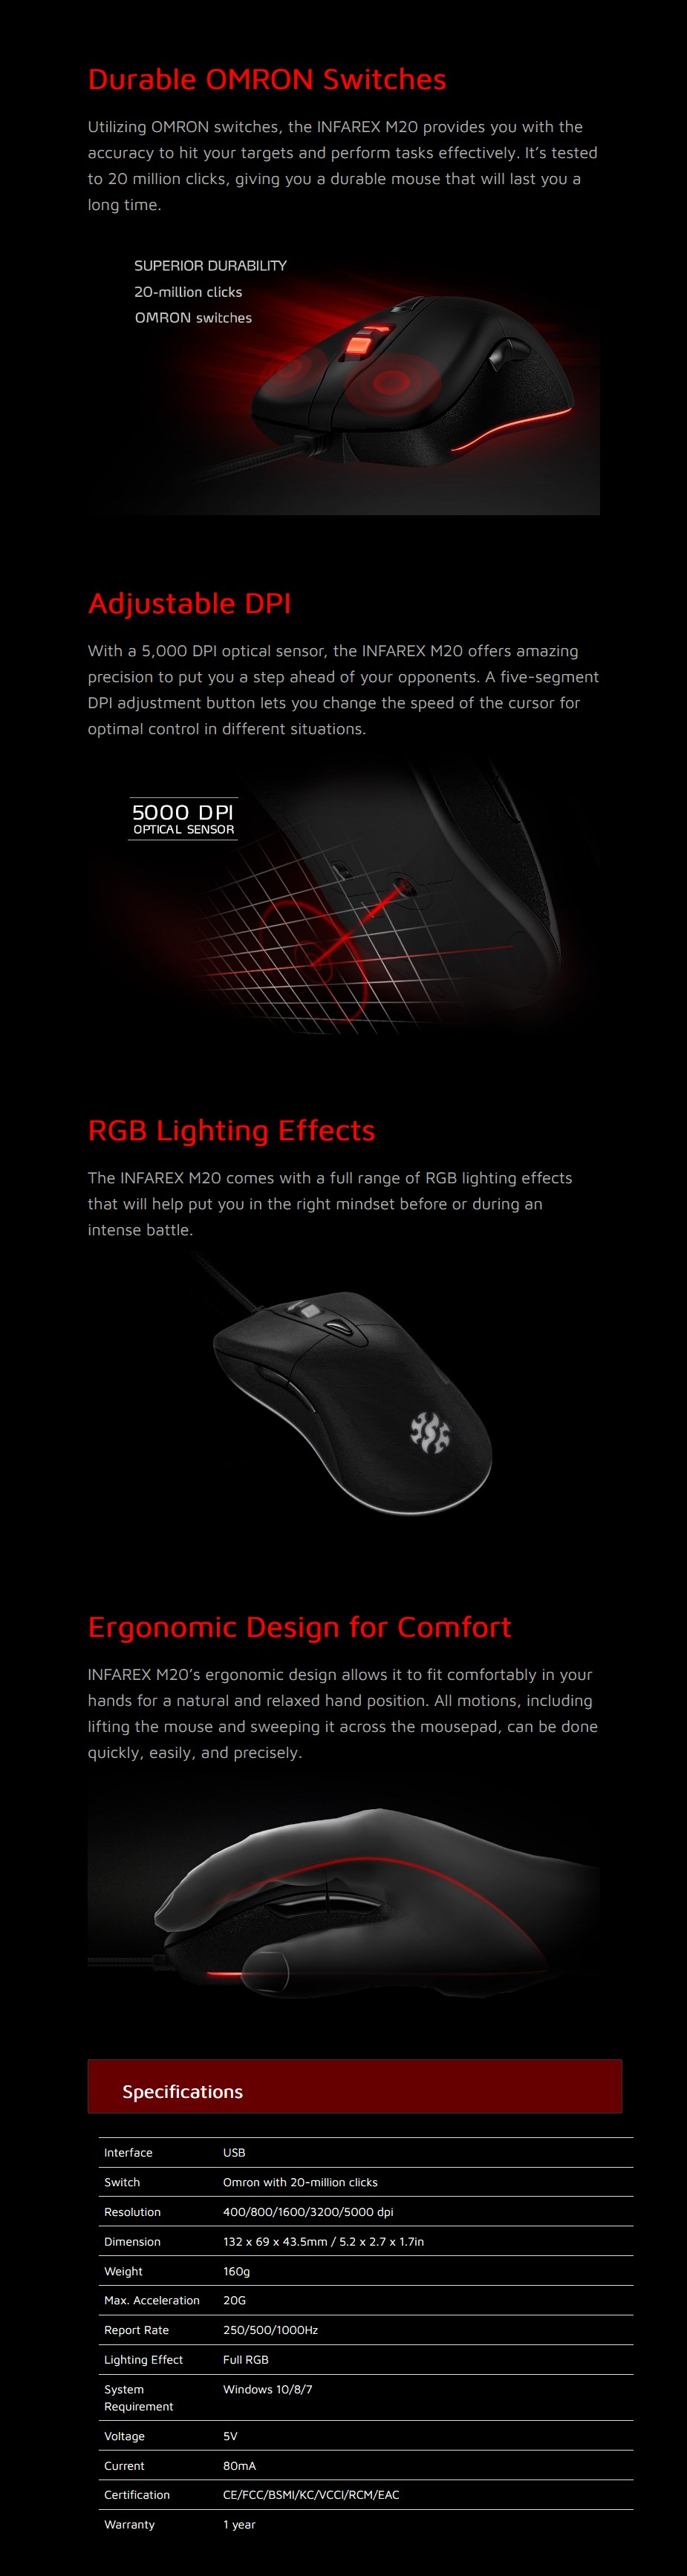 ADATA INFAREX M20 Optical Gaming Mouse - Overview 1